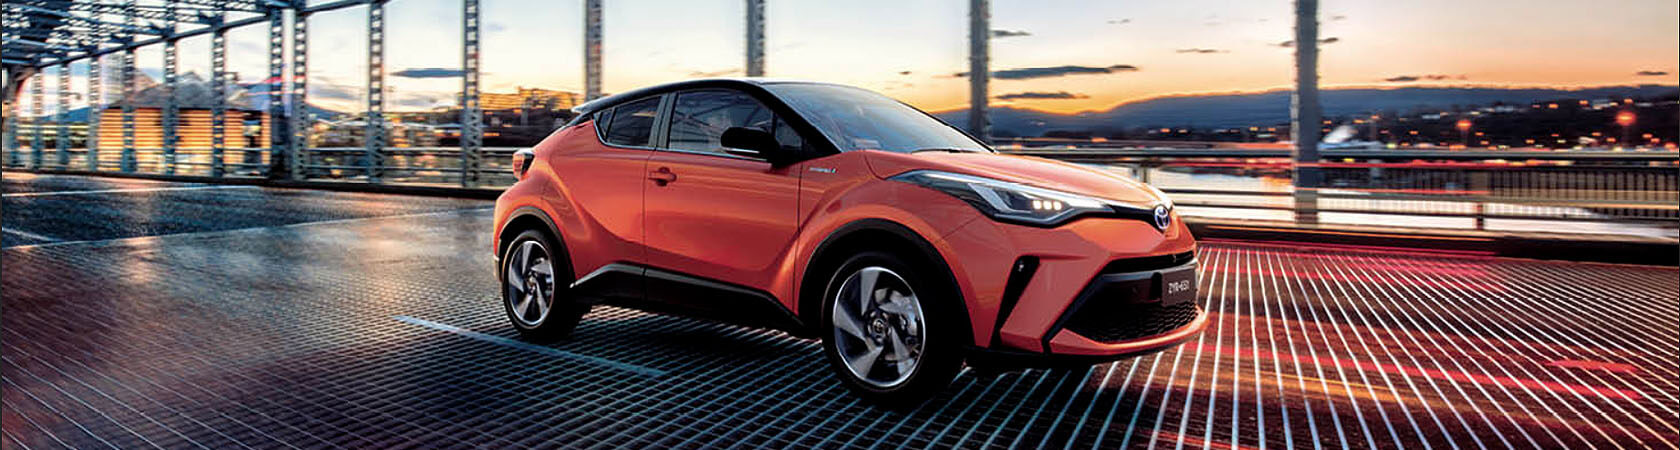 Mike Carney Toyota C-HR